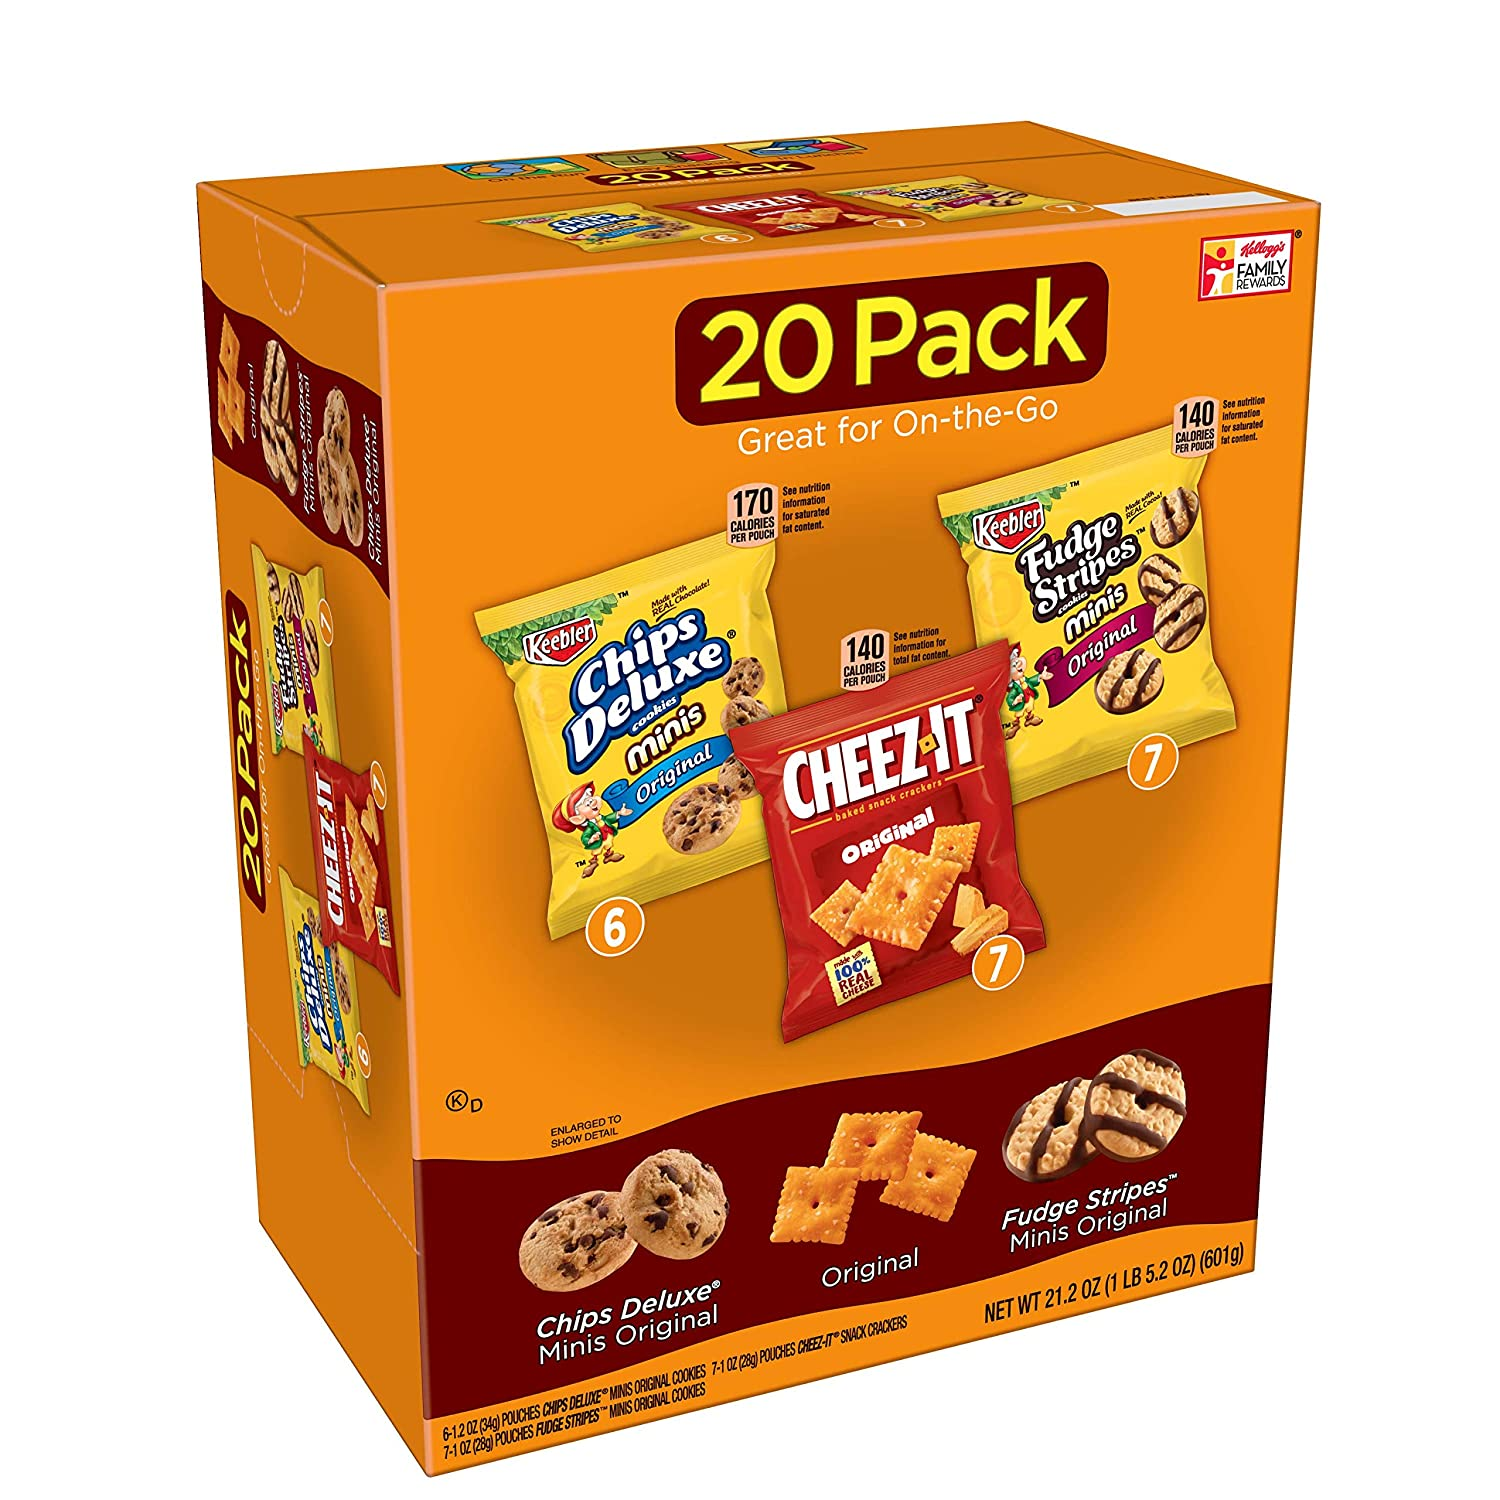 Keebler,Cookies and Crackers, Variety Pack,21.2 oz (20 Count), Packaging may vary